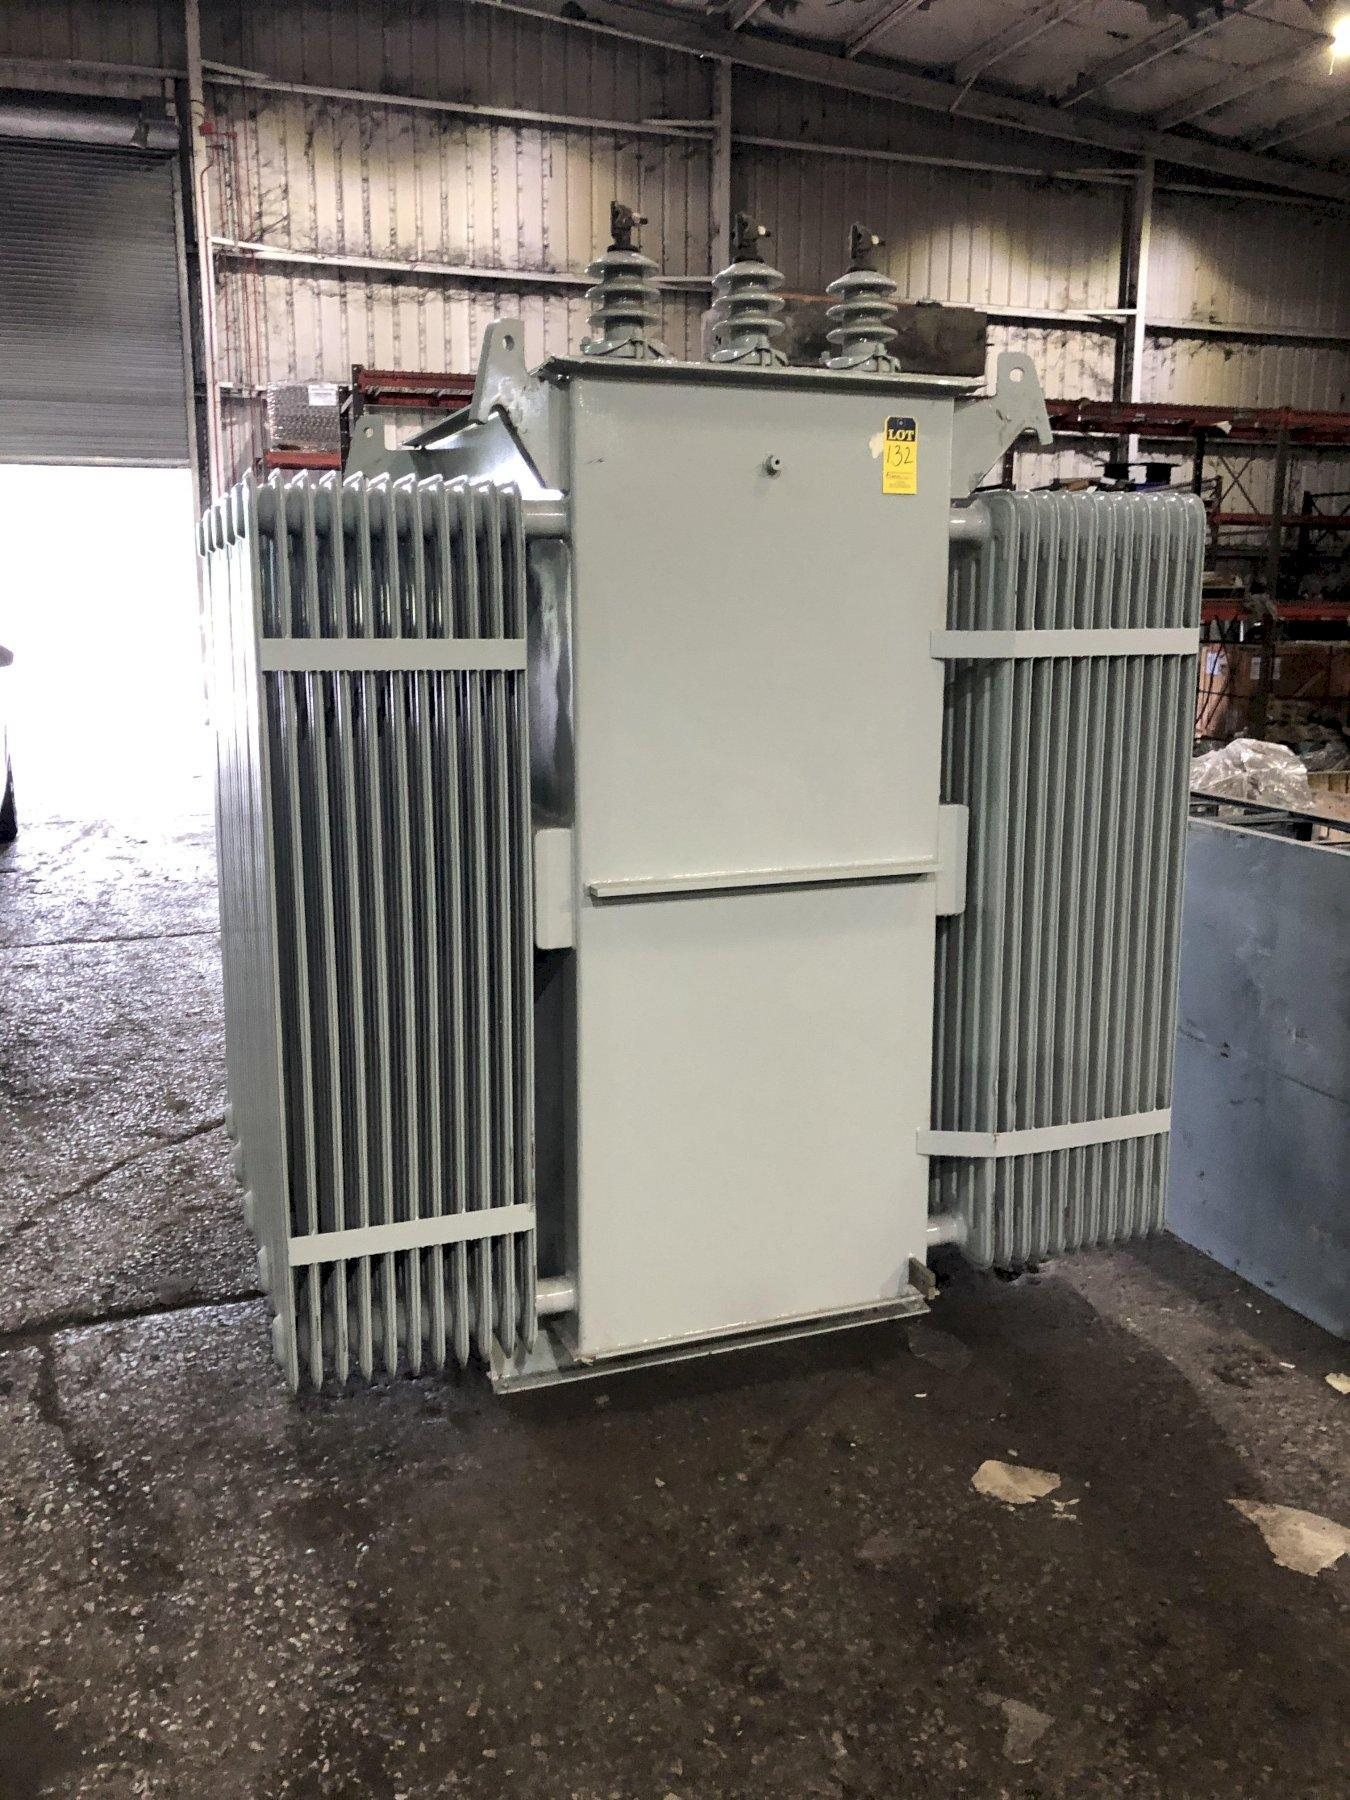 ELECTRIC SUPPLY REBUILT FURNACE TRANSFORMER 2240 KVA, 13,800 DELTA PRIMARY VOLTS, 1350Y/779 SECONDARY VOLTS, 3 PHASE, 60 HZ., 5 HIGH SIDE TAPS FROM 14490 TO 13110, 6.1 IMP., S/N 170825-21, 12,200 #